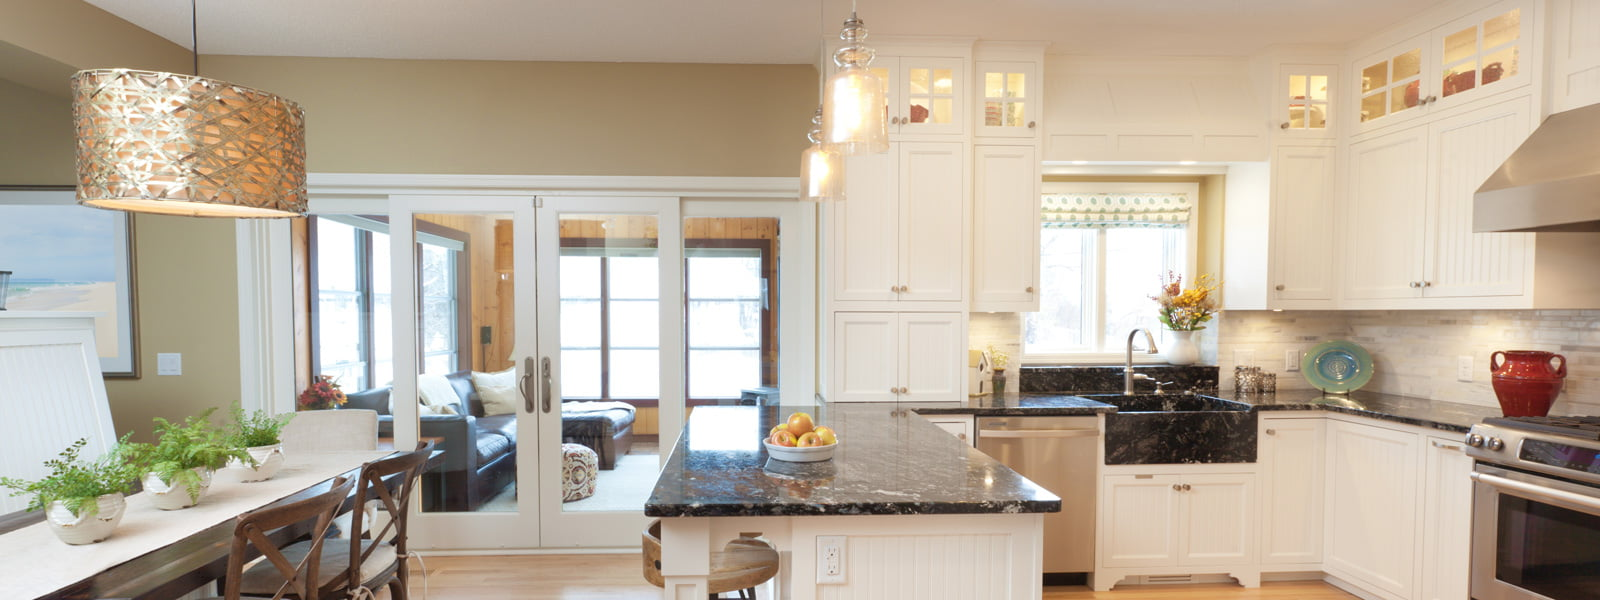 Kitchen and Appliance Lighting